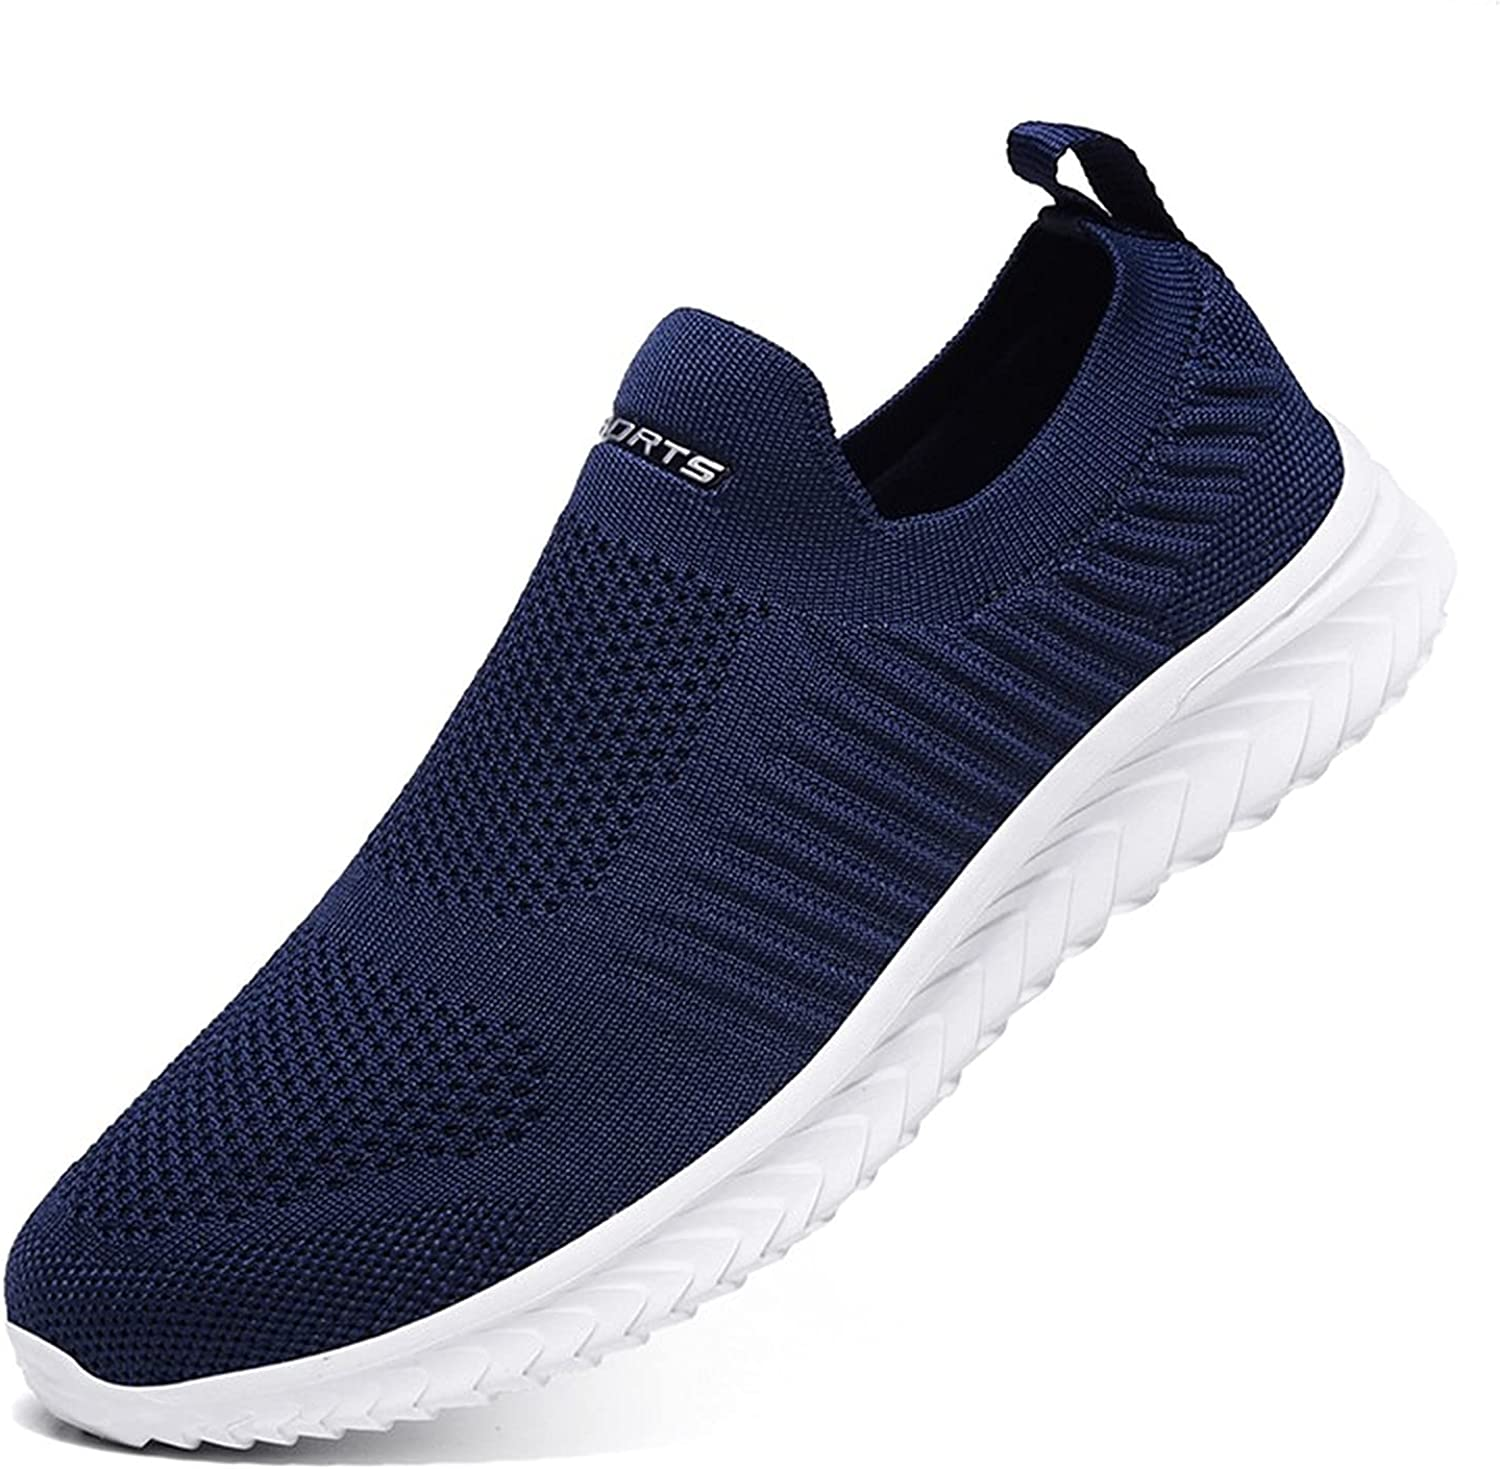 COOPCUP Limited Special Price Men Casual Shoes Sport Lightweight Comfortable Phoenix Mall Sneakers